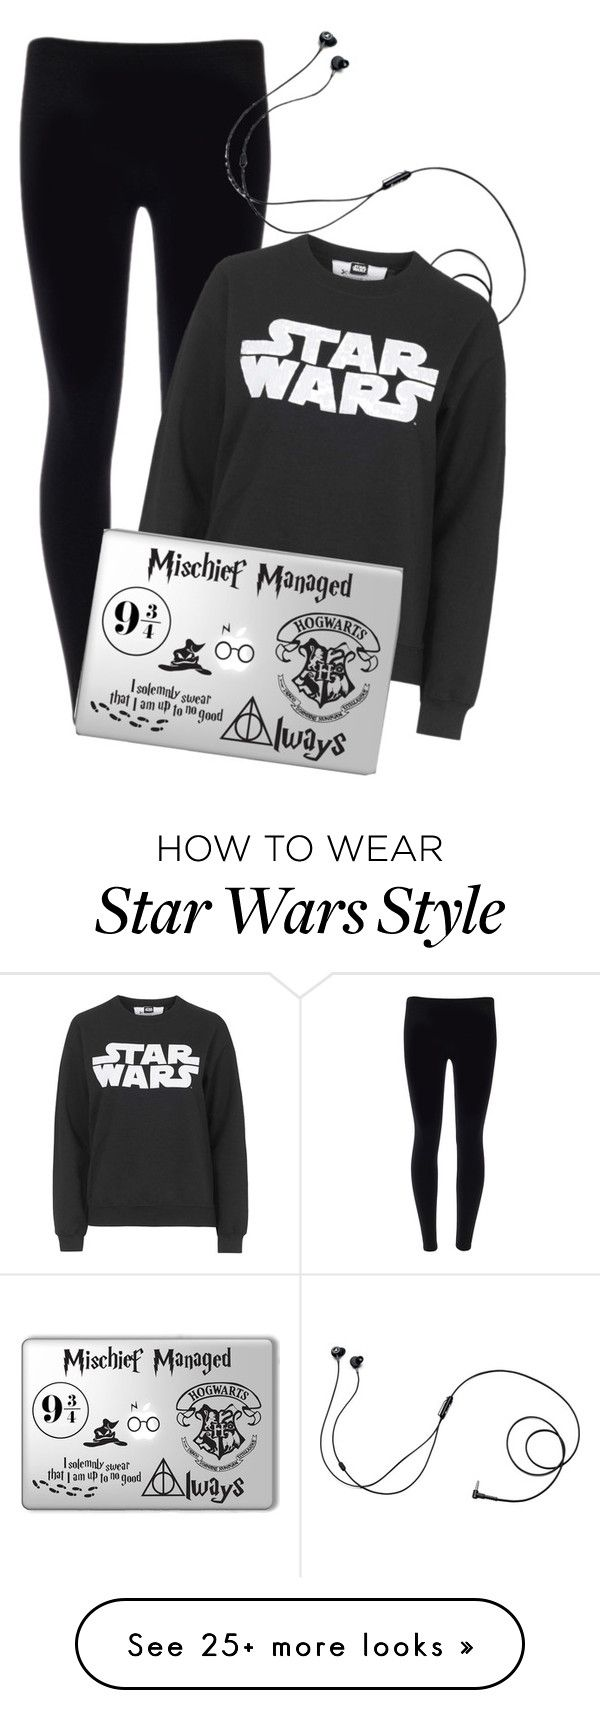 """""""{ootn}"""" by that-artist-love on Polyvore featuring Marshall, Topshop, women's clothing, women, female, woman, misses, juniors, esknowshowtofashion and esknowshowtoootn"""